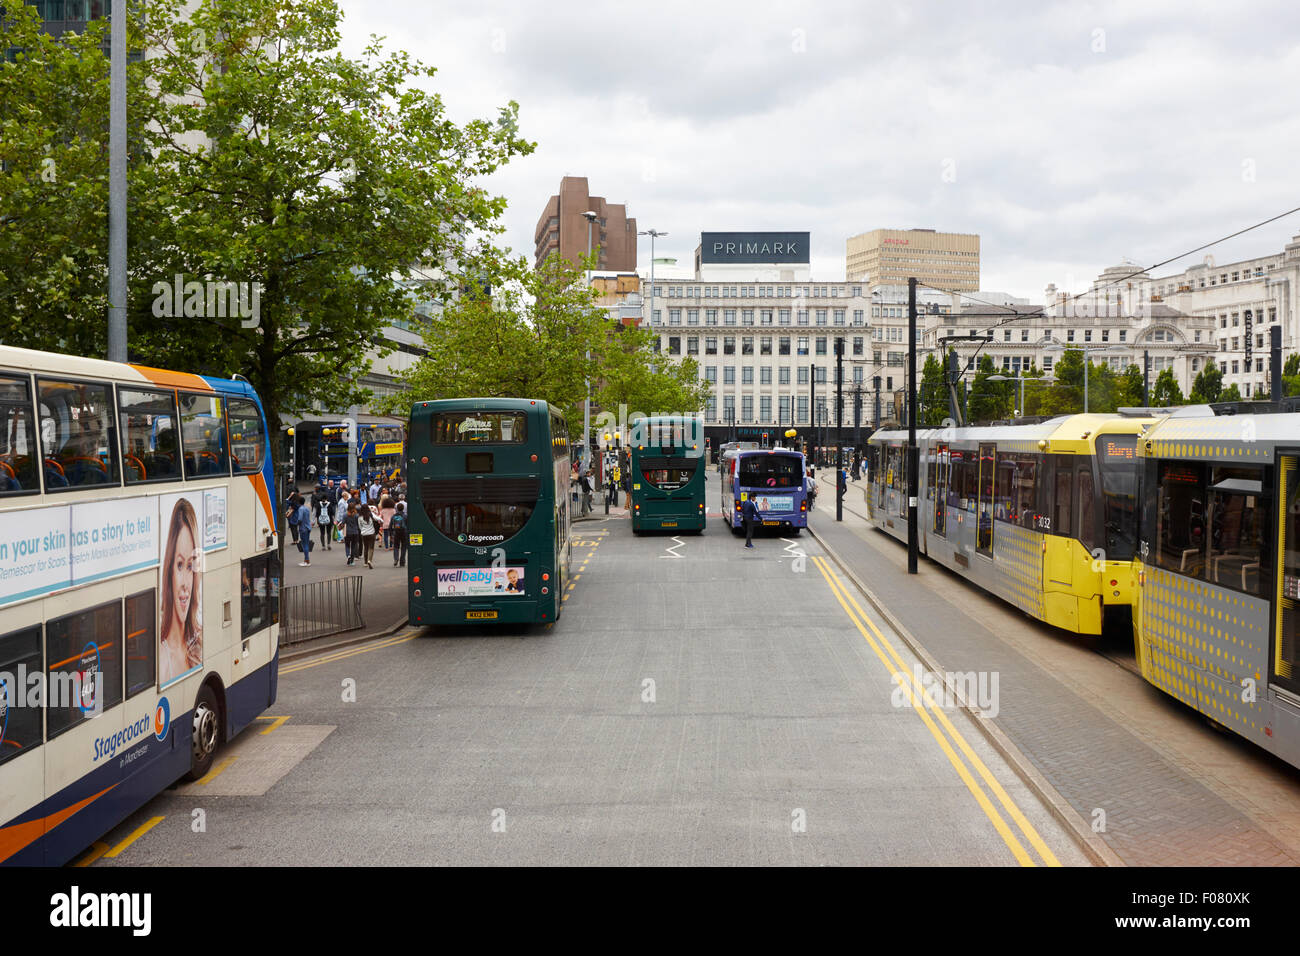 Piccadilly gardens bus station Manchester uk - Stock Image